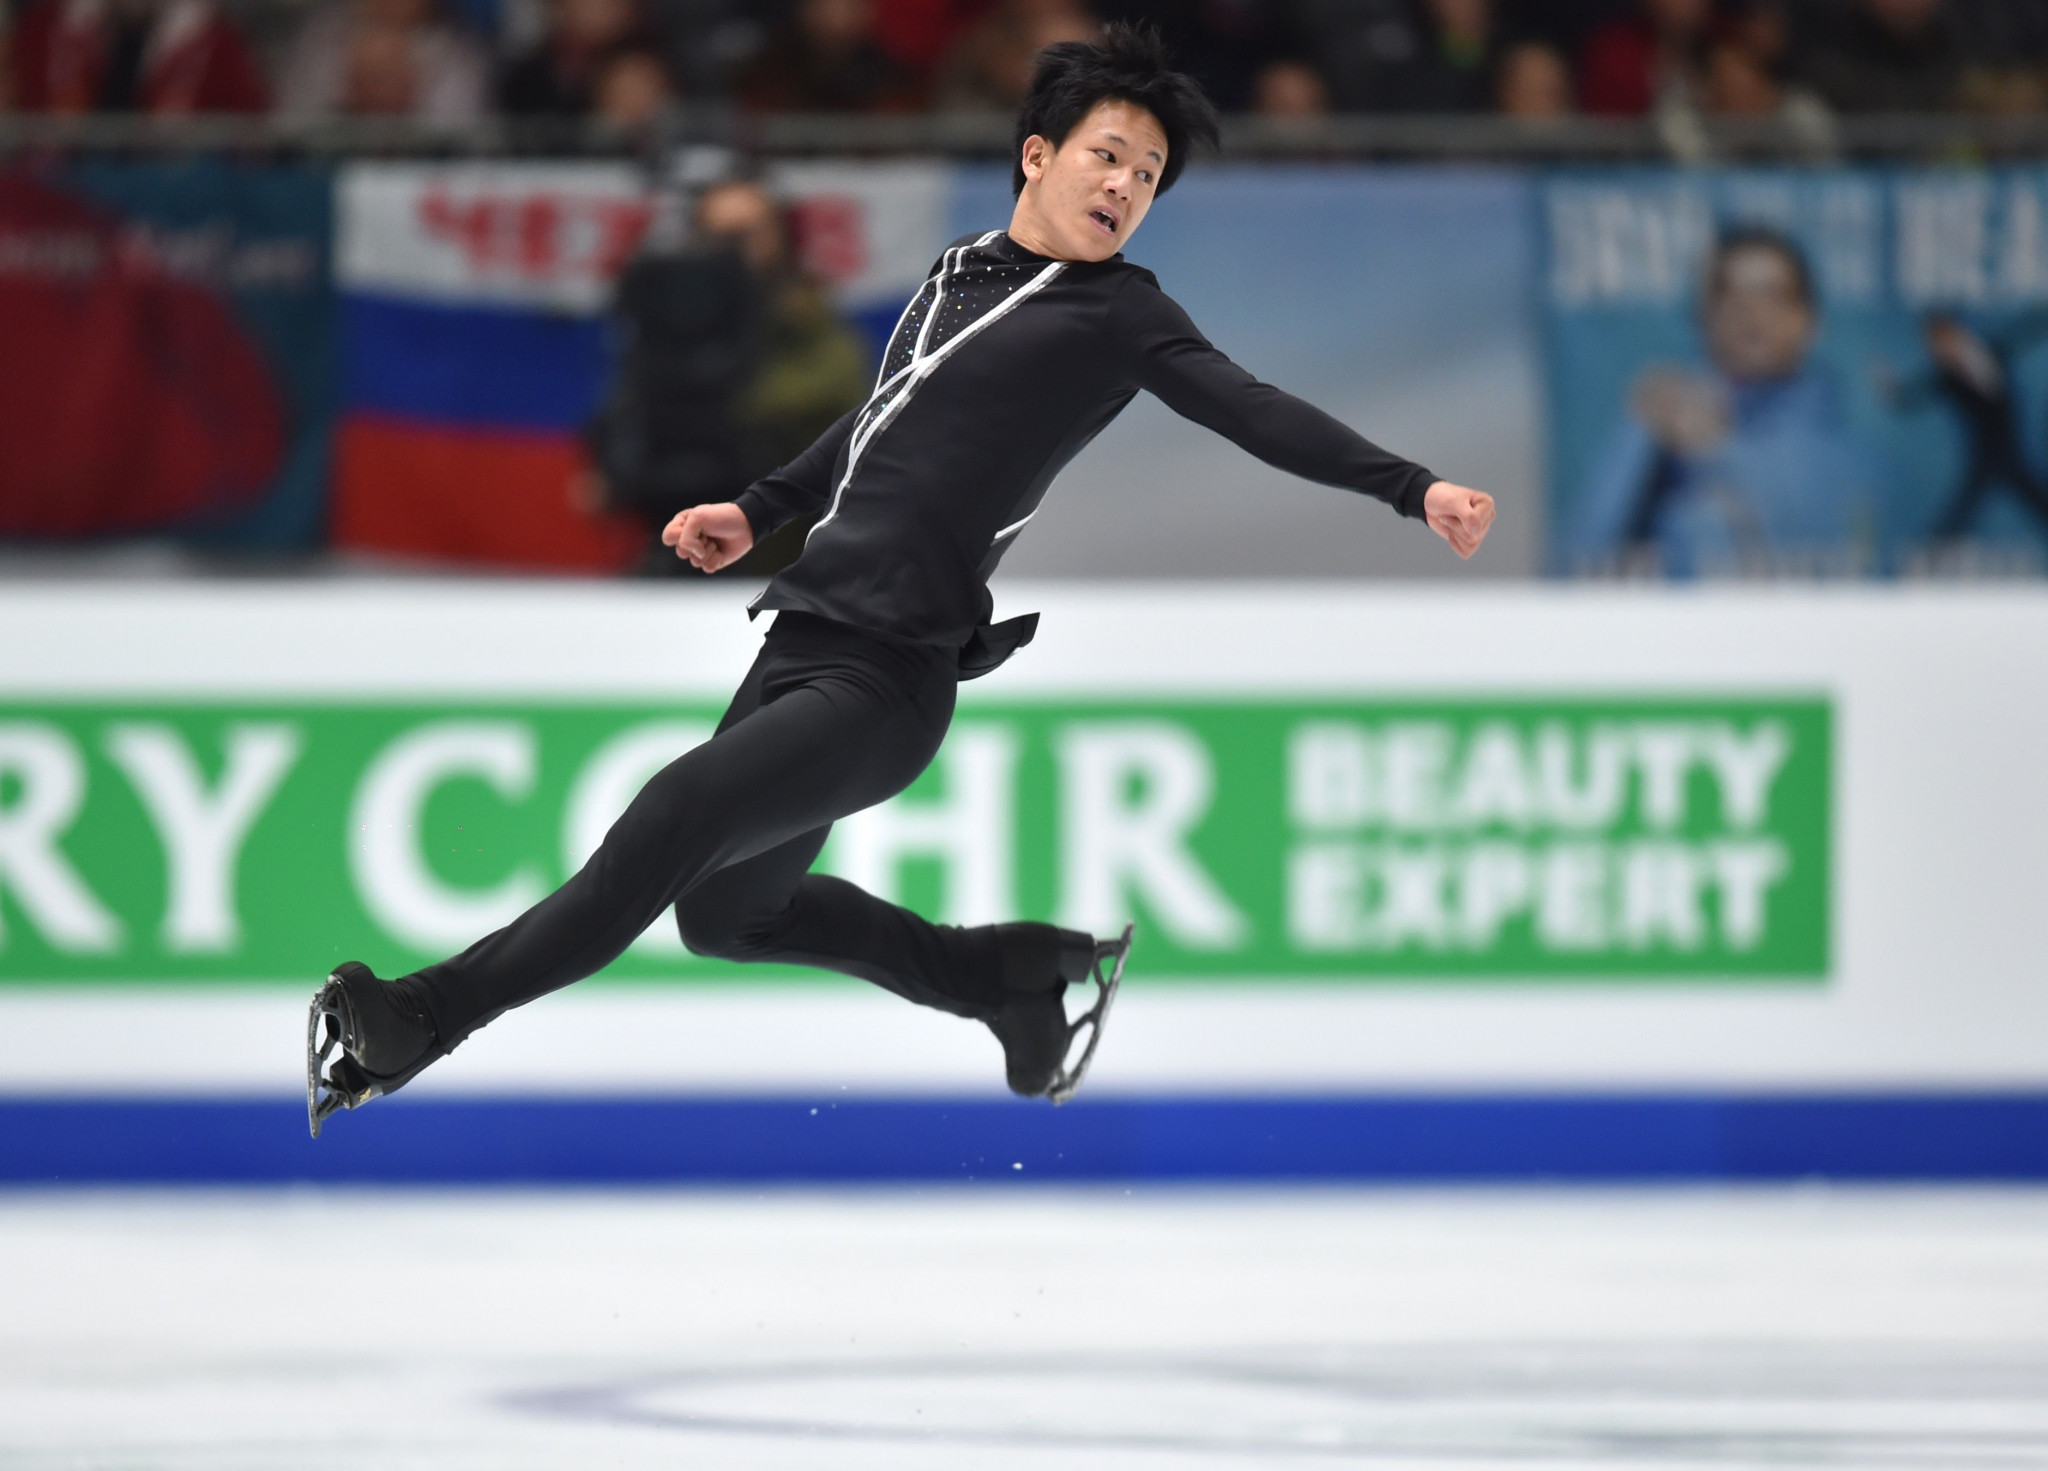 France's Adam Siao Him Fa produced a fine free skating routine to seal second spot ©Getty Images